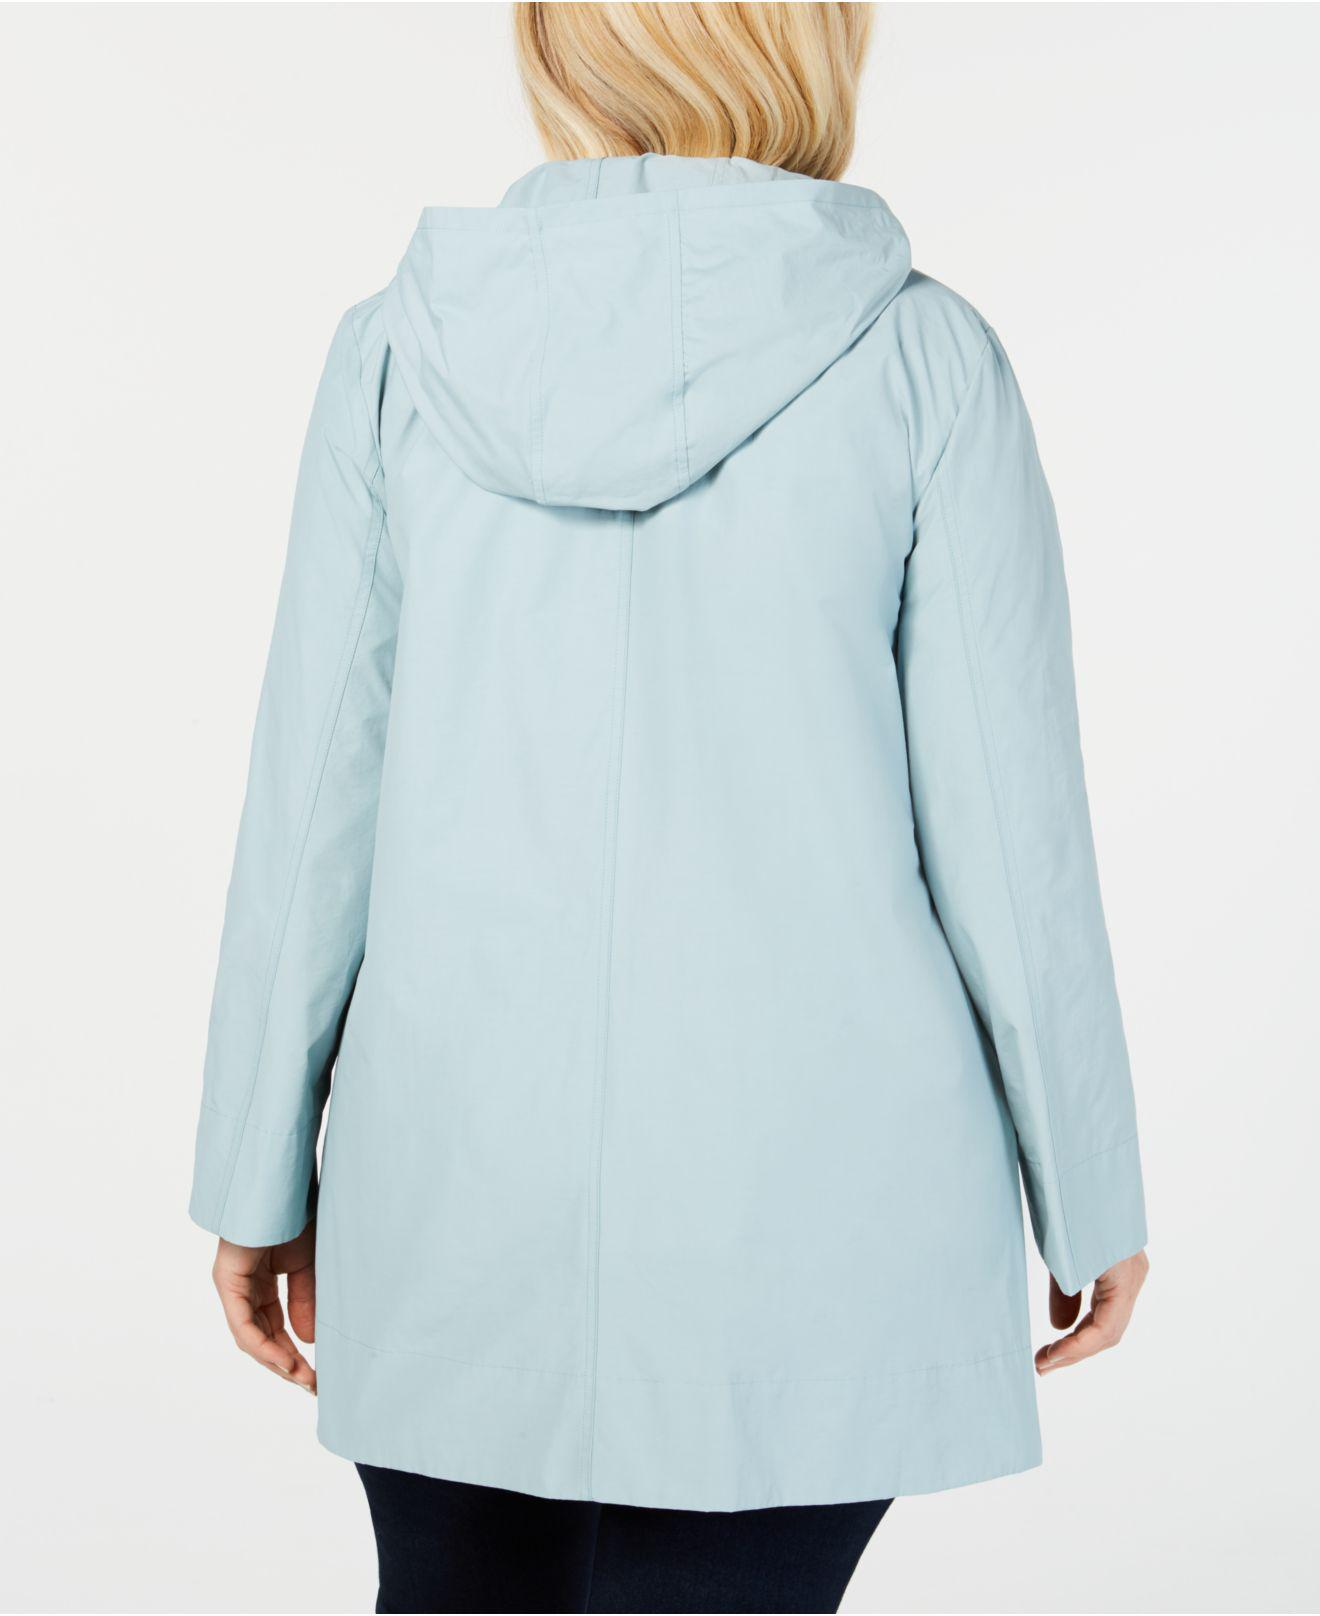 e76f4c39832 Lyst - Eileen Fisher Plus Size Organic Cotton Nylon Stand-collar Jacket in  Blue